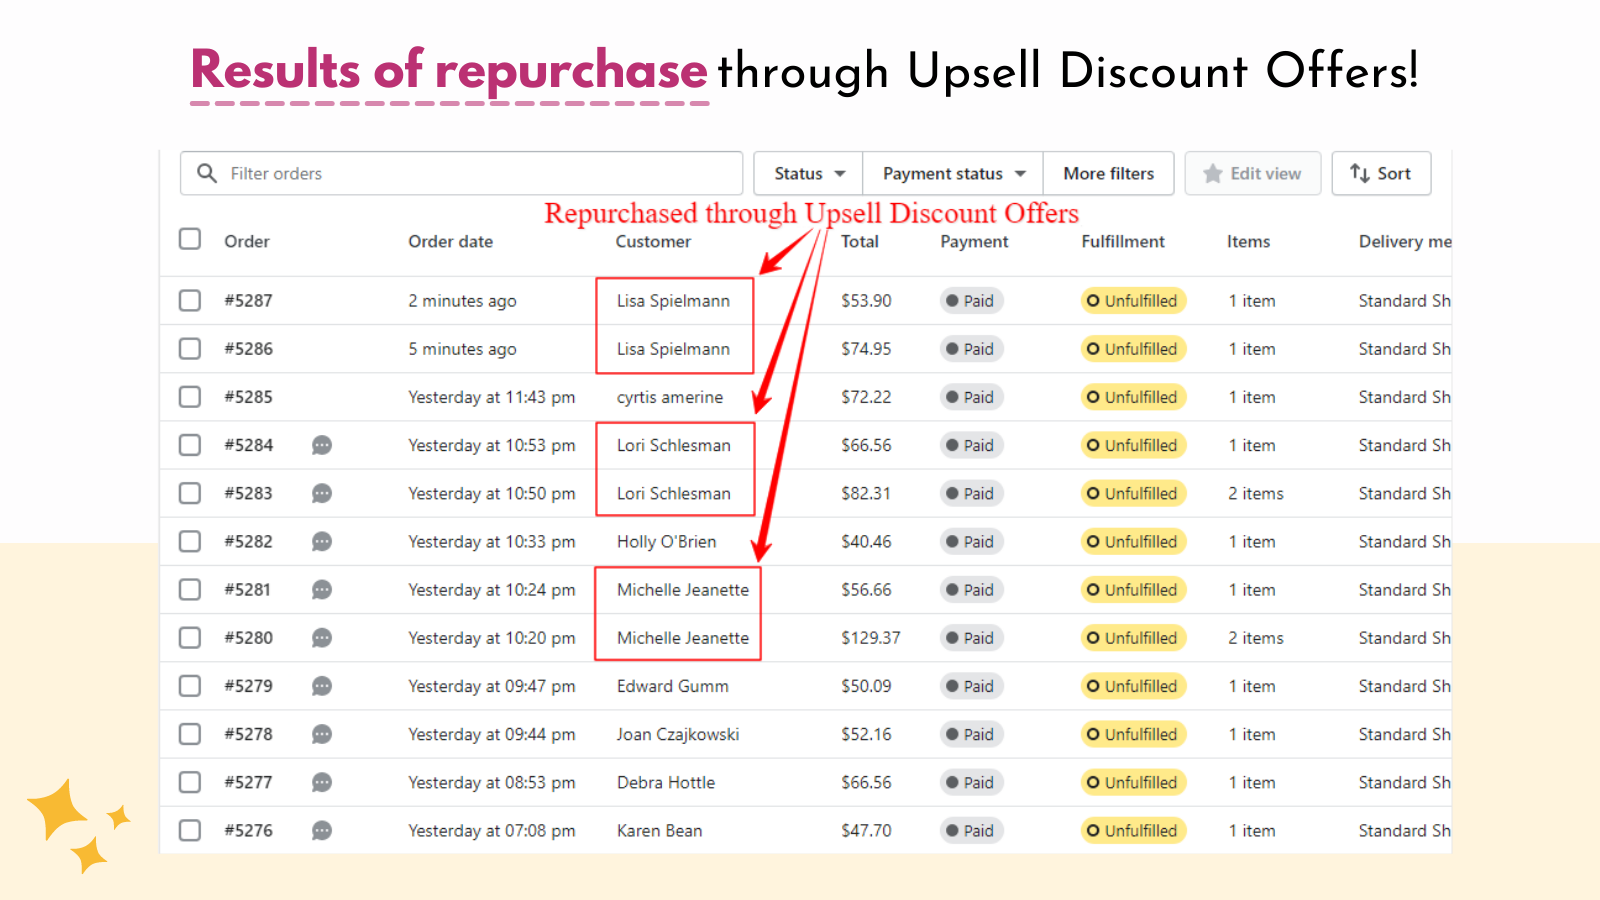 Repurchase through Upsell Discount Offers